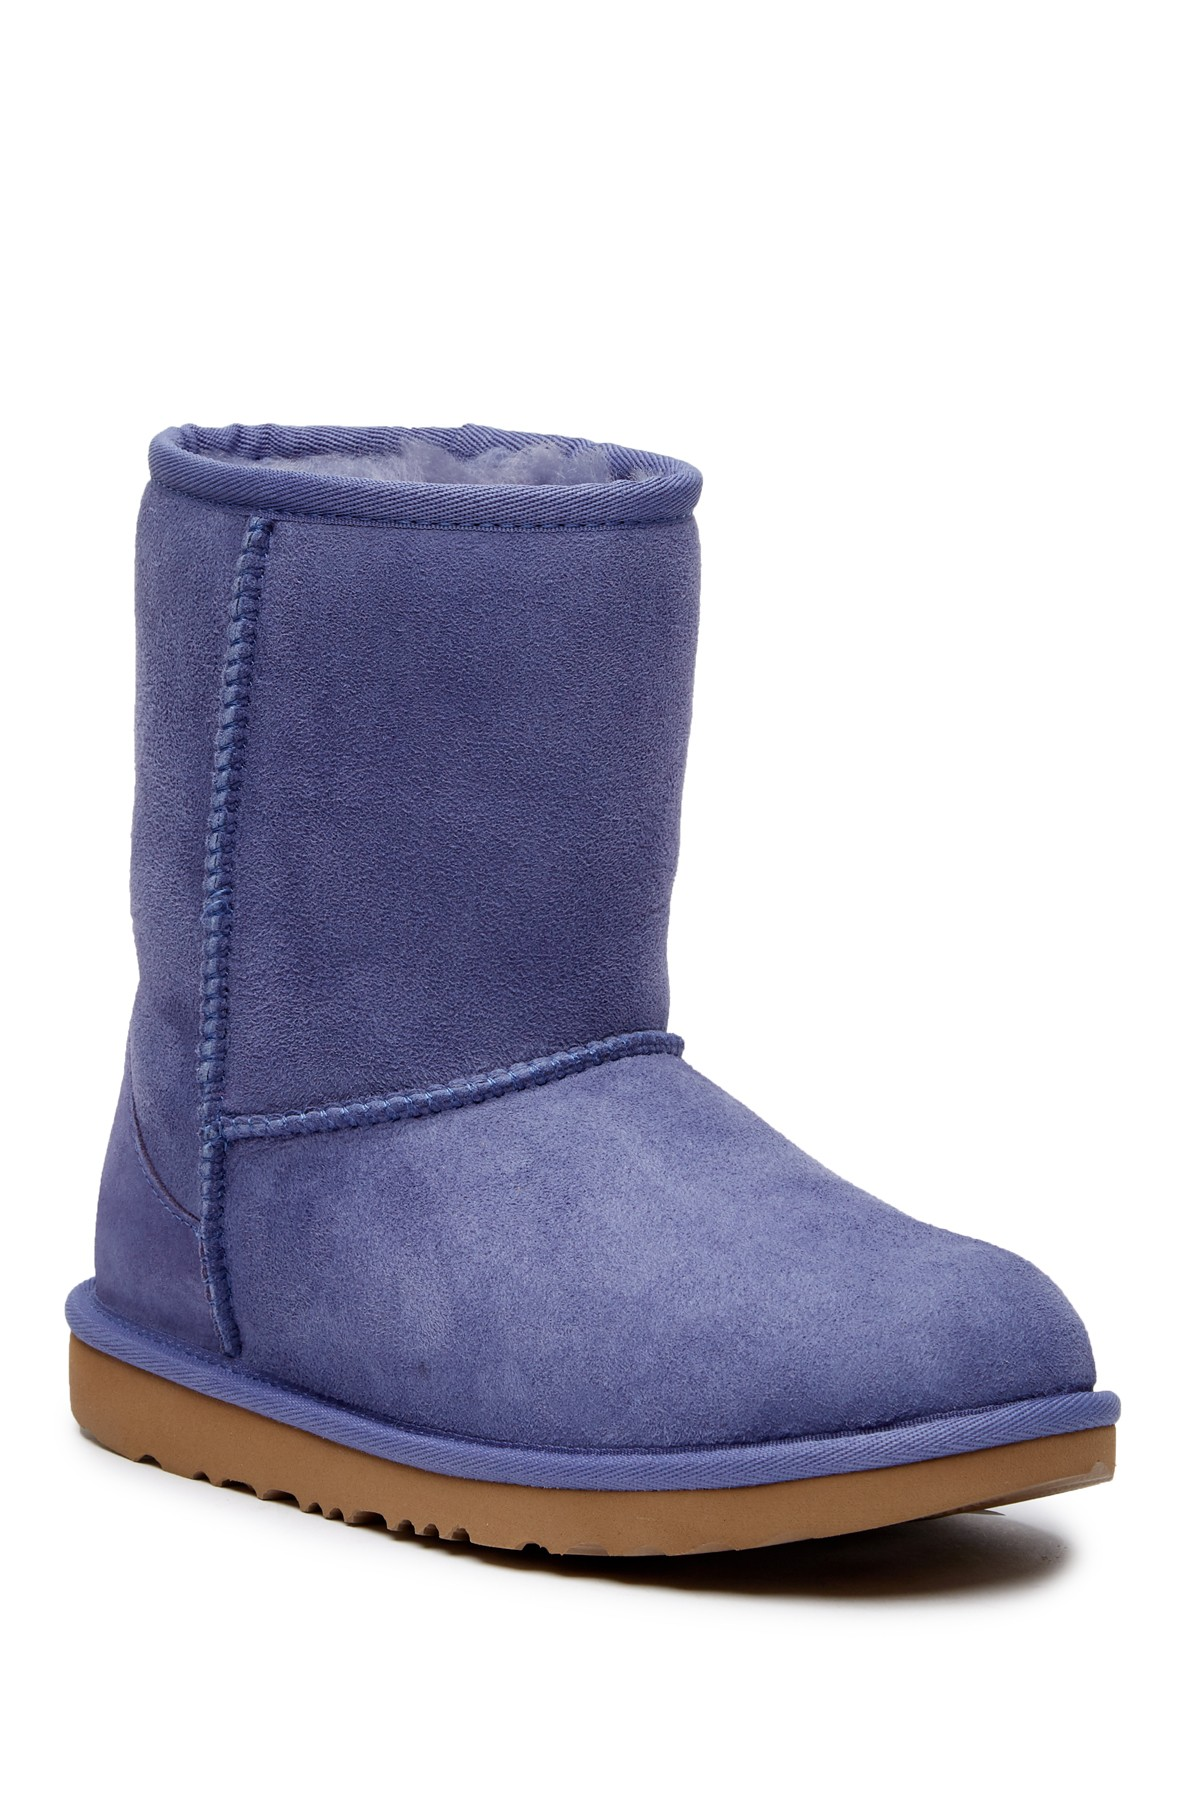 d97072ccc07 UGG Classic Short II Water Resistant Genuine Shearling Boot (Little ...